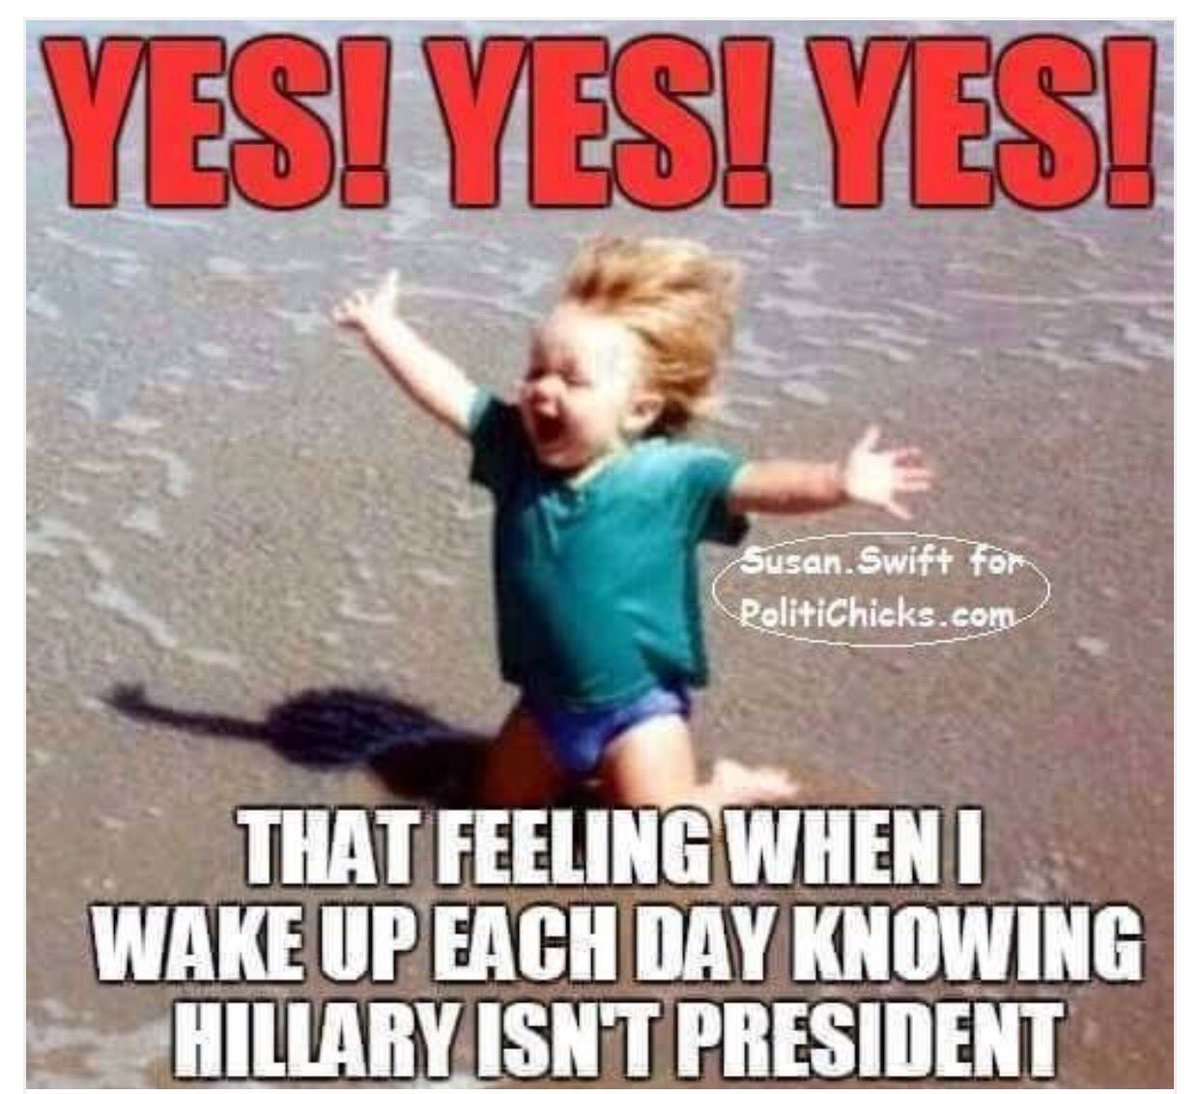 71) YES! YES! YES! That feeling when I wake up each day knowing #Hillary isn&#39;t president! <br>http://pic.twitter.com/THrNM1KY66